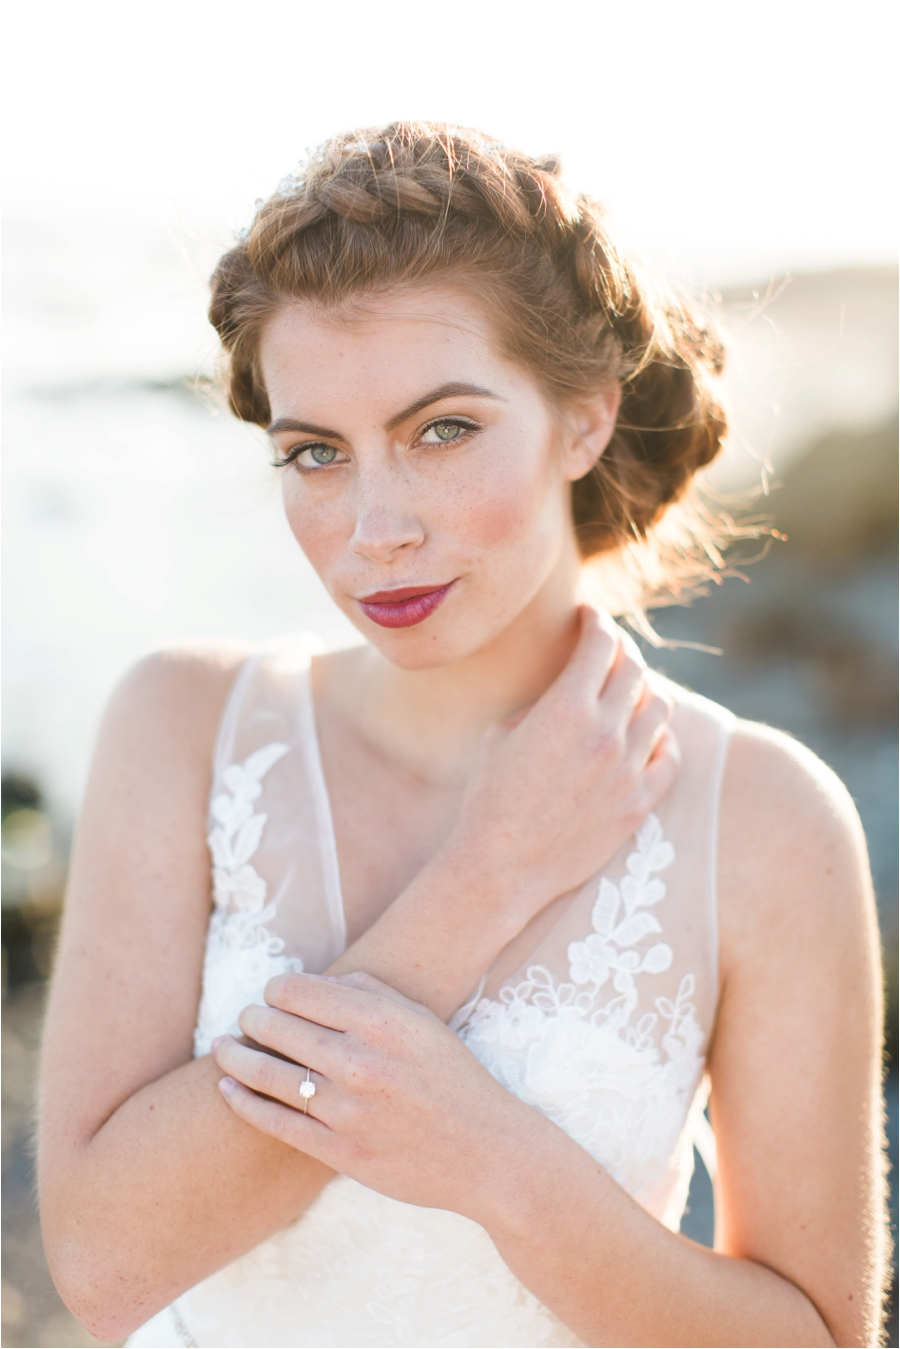 San-Luis-Obispo-wedding-photographer-watters-bridal-gown-taylor-kinzie-photography_0907